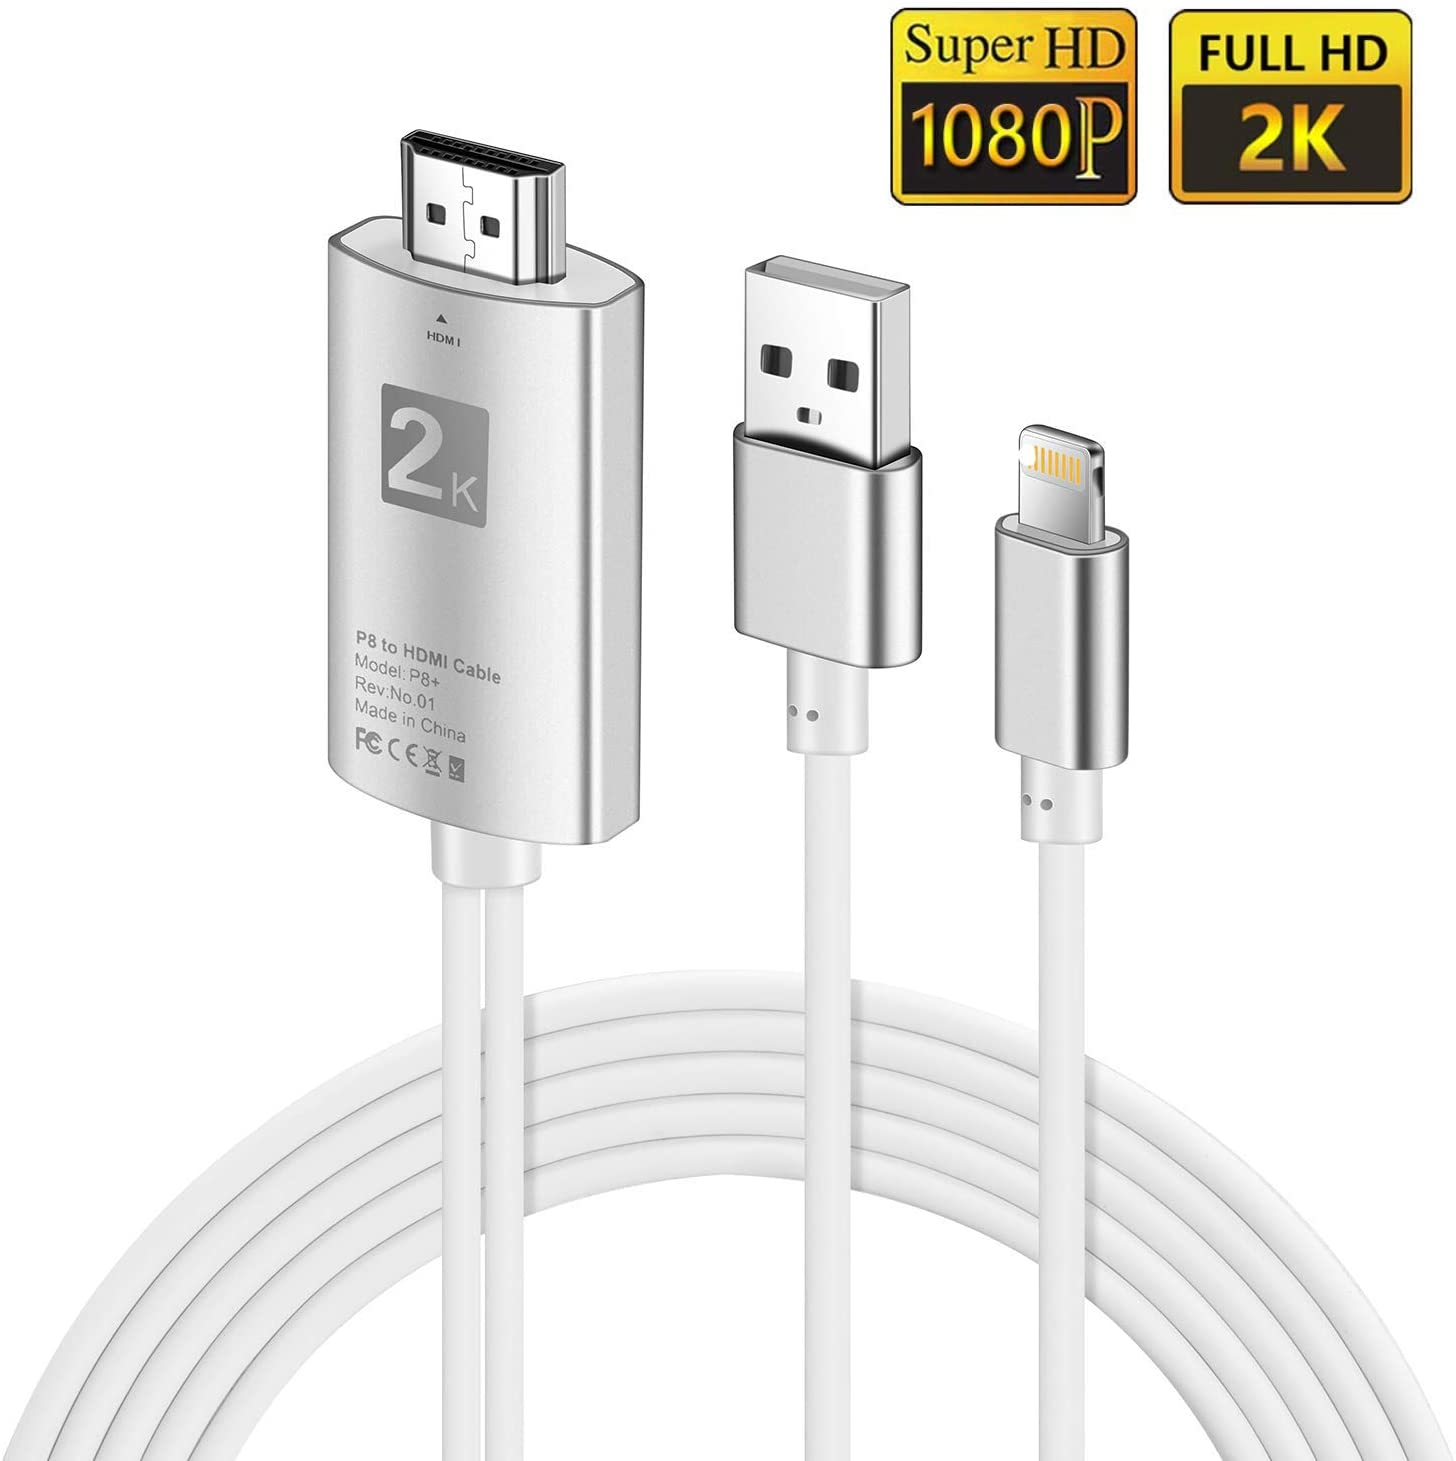 FLYFLY HDMI Cable Adaptador 1080P Digital AV a HDMI Transmitir Audio Video TV Proyector Cable para Phone XS/XS MAX/XR/X/8/7 /6/5 Series/Pad Air/Mini/Pro/iPod Touch(6.5ft): Amazon.es: Electrónica